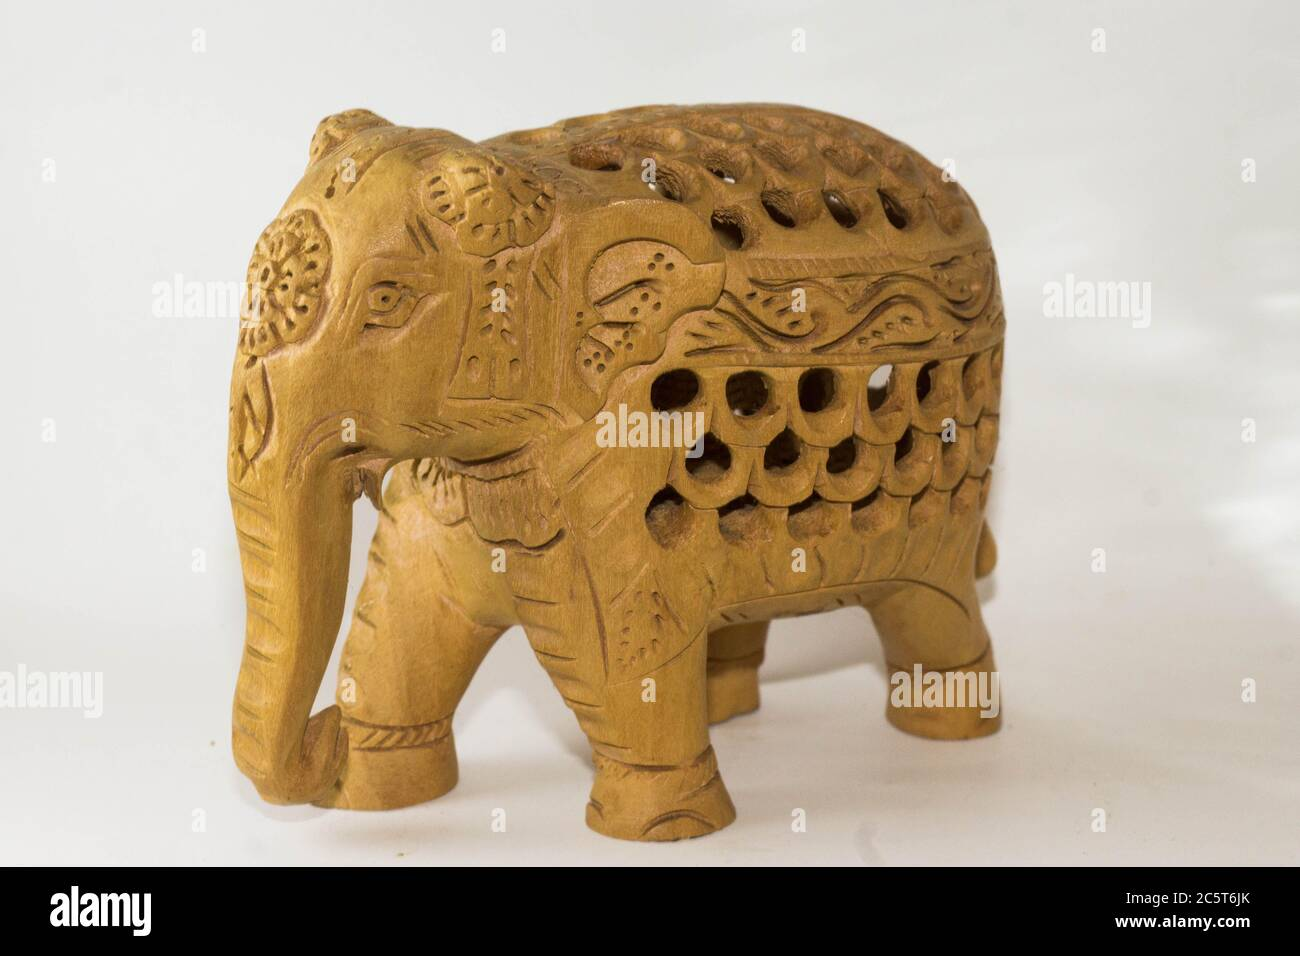 Wooden Carving Indian Elephant High Resolution Stock Photography And Images Alamy